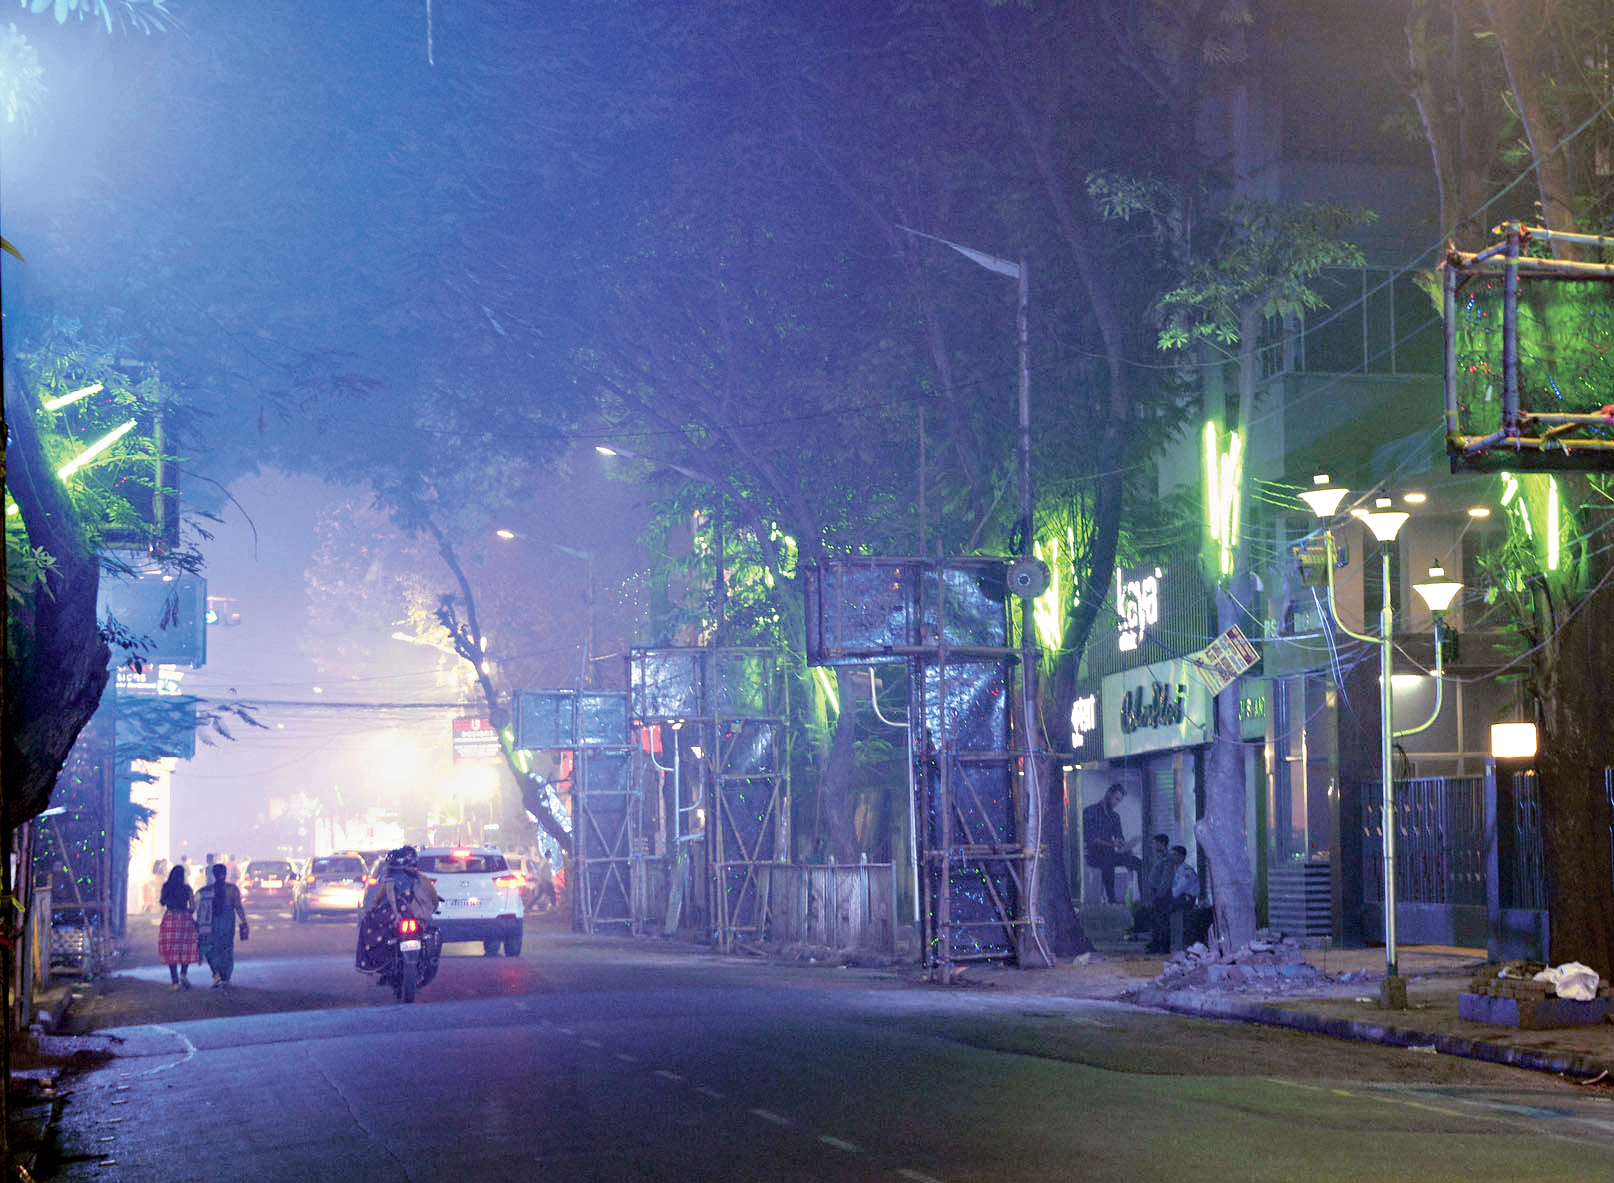 SMOKESCREEN: Loudon Street in south Calcutta covered in haze around 12.50 am on Wednesday.